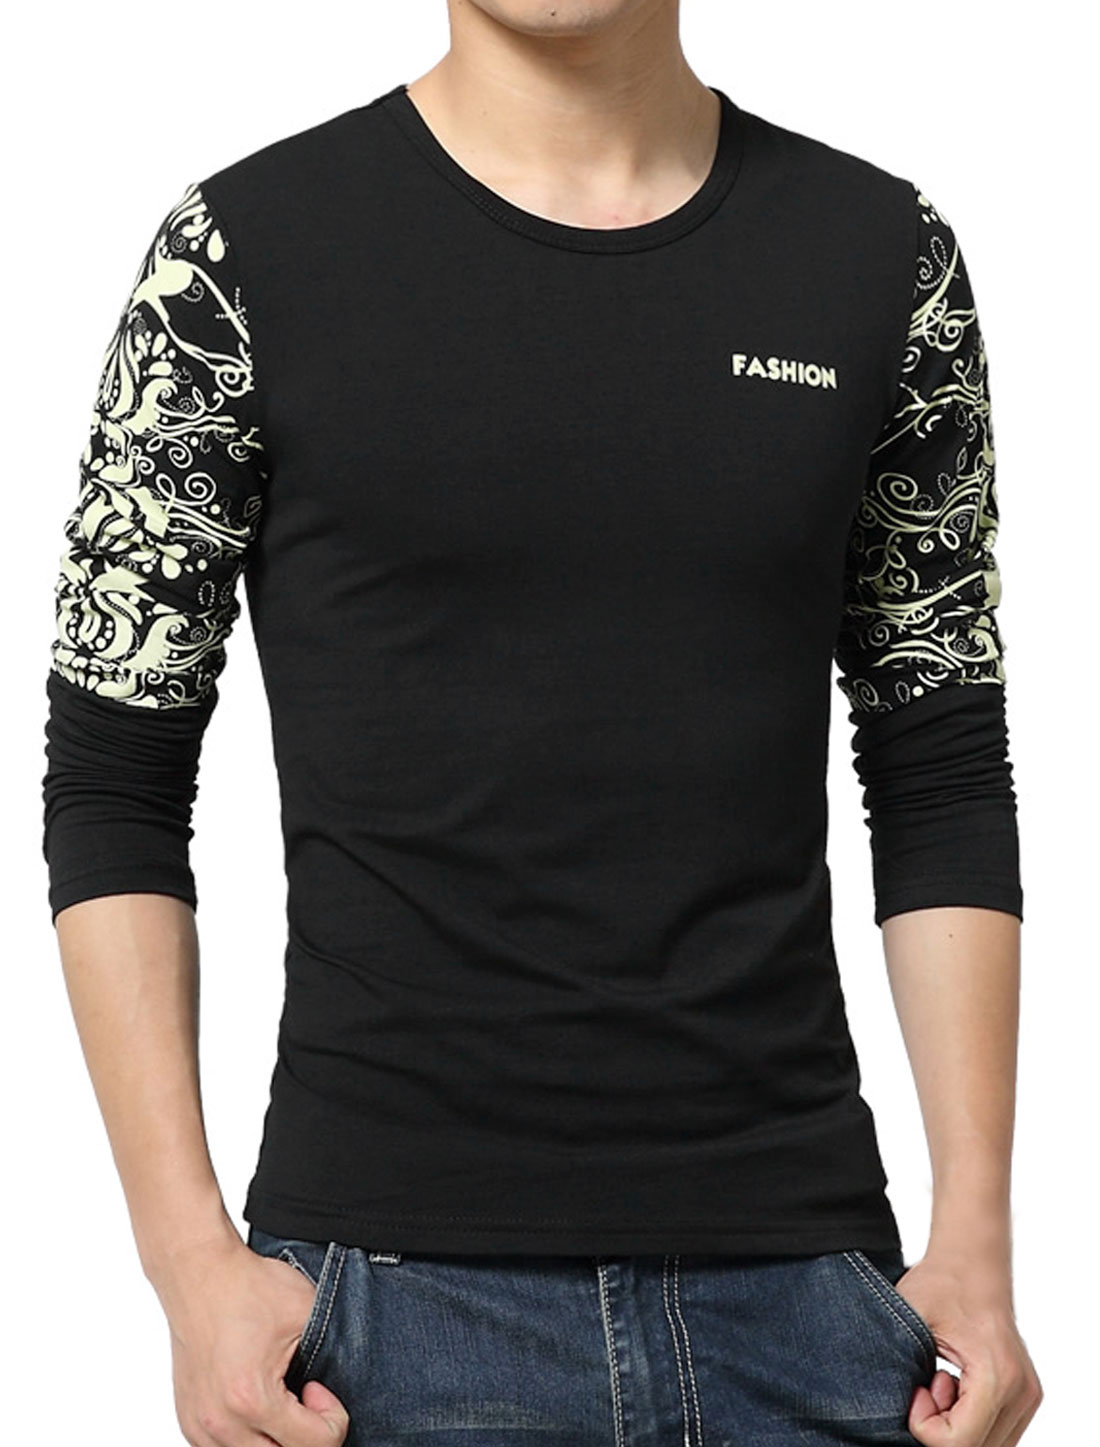 Men Long Sleeves Letters Novelty Slim Fit T-Shirt Black S